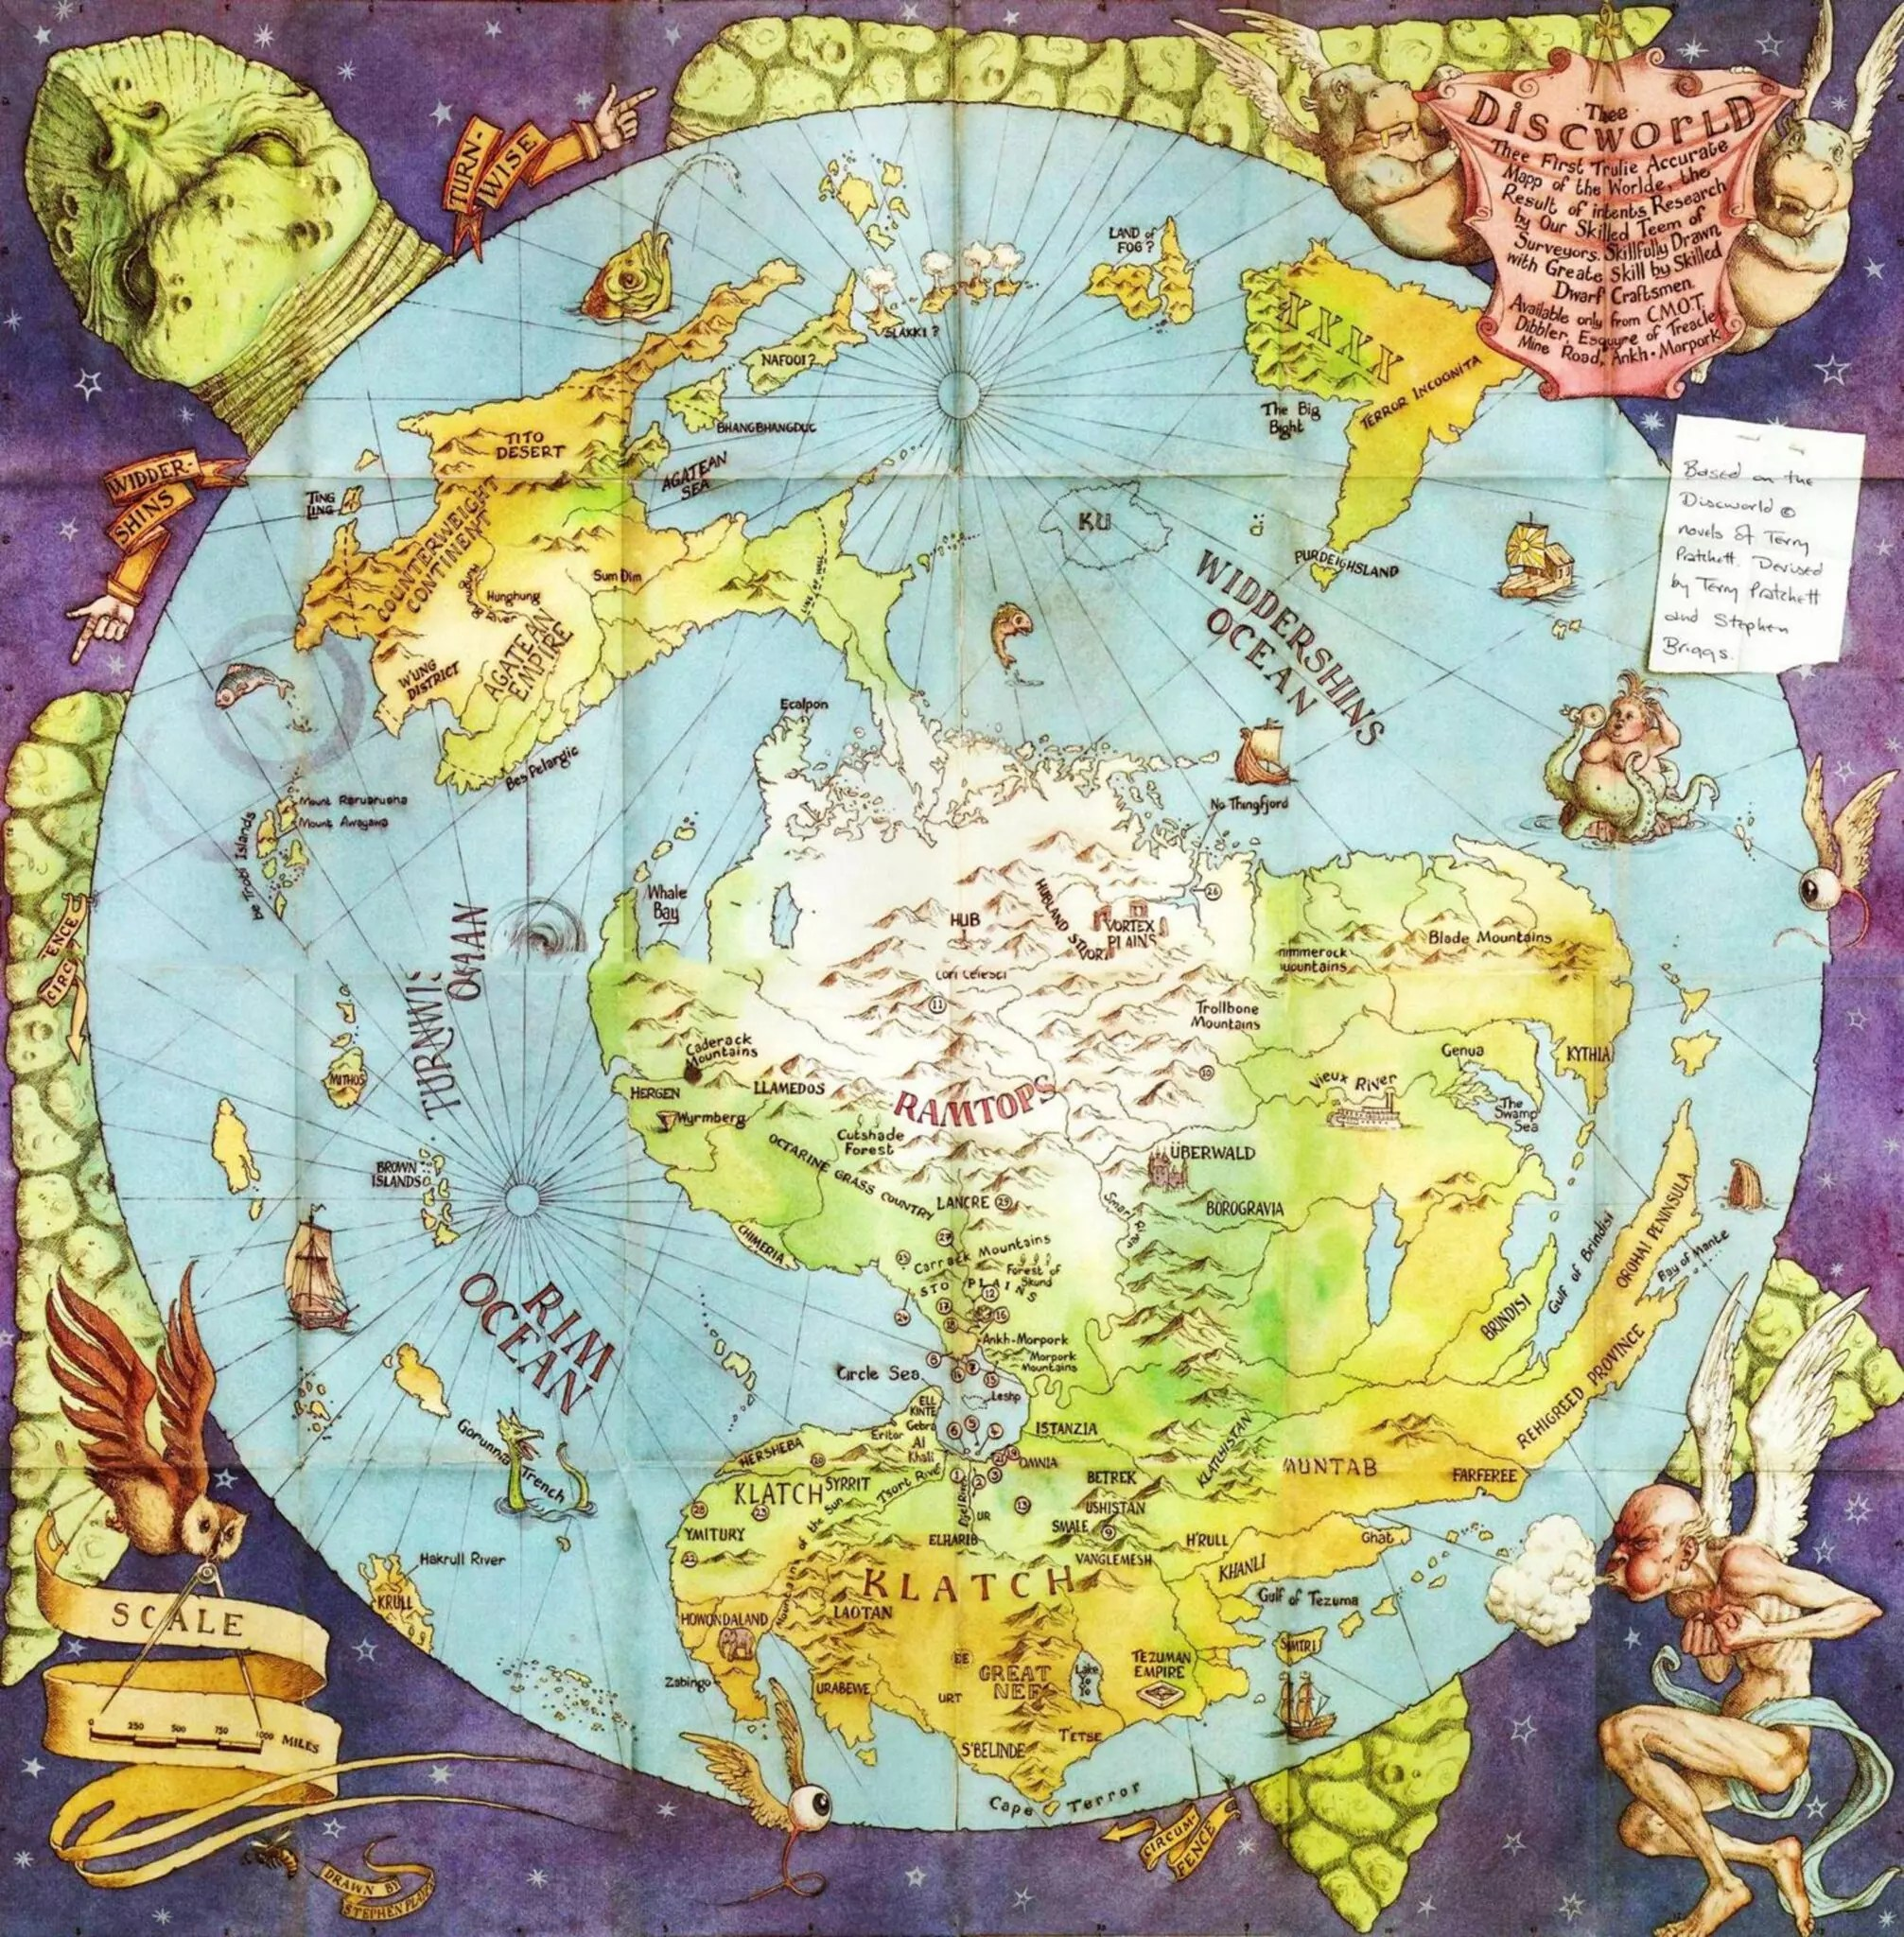 terry pratchett discworld map full